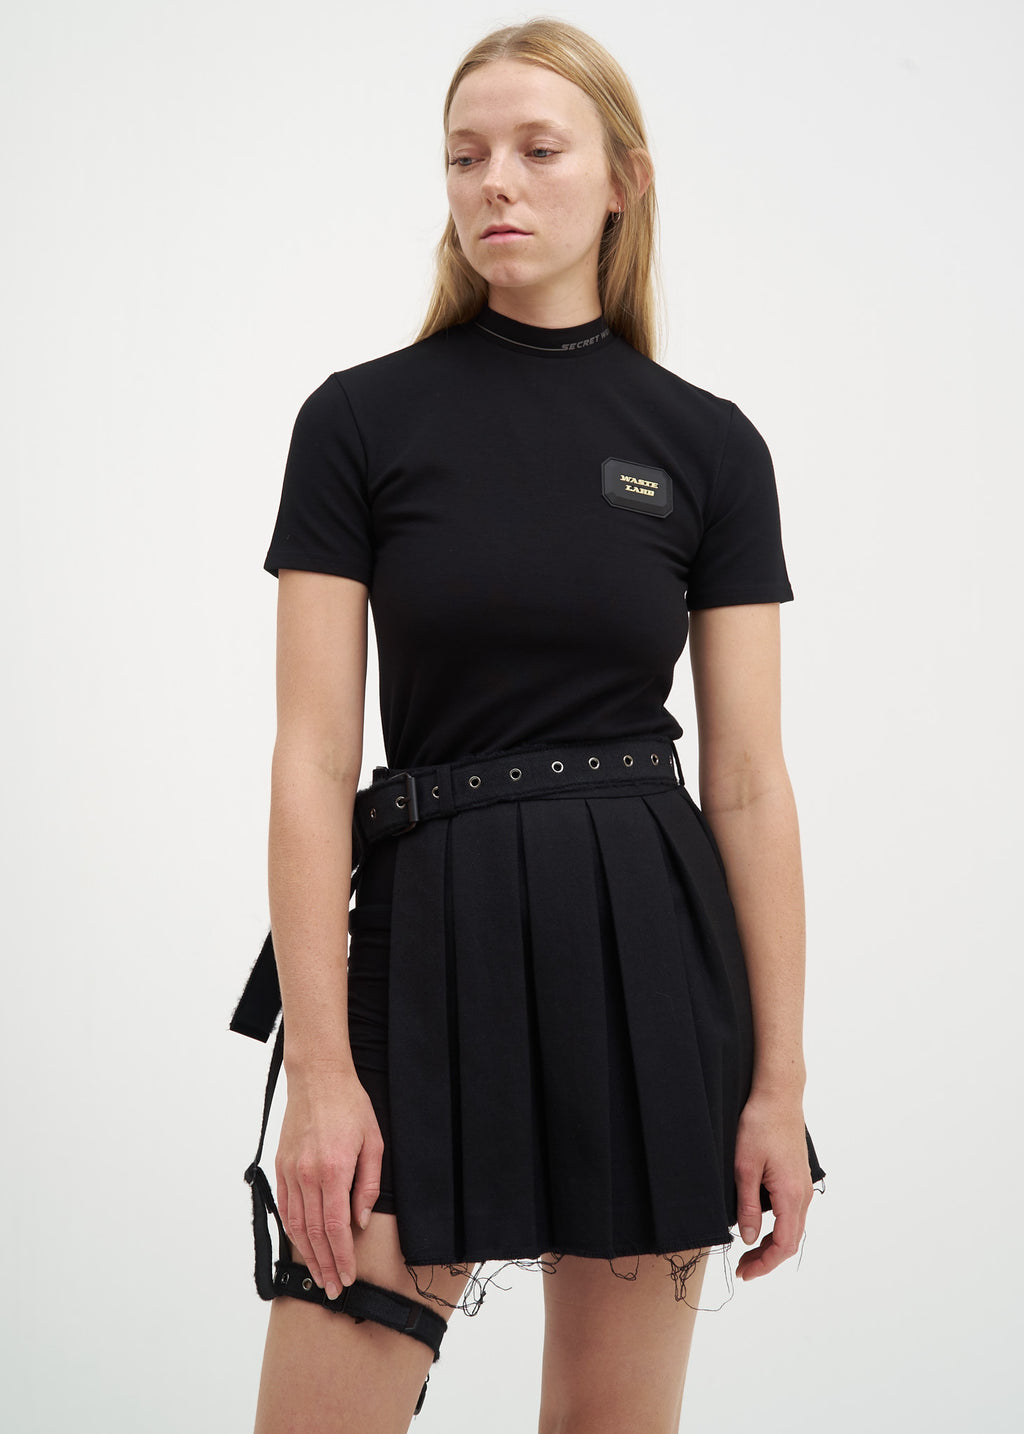 Hyein Seo, Black Rubber Label T-Shirt, 017 Shop